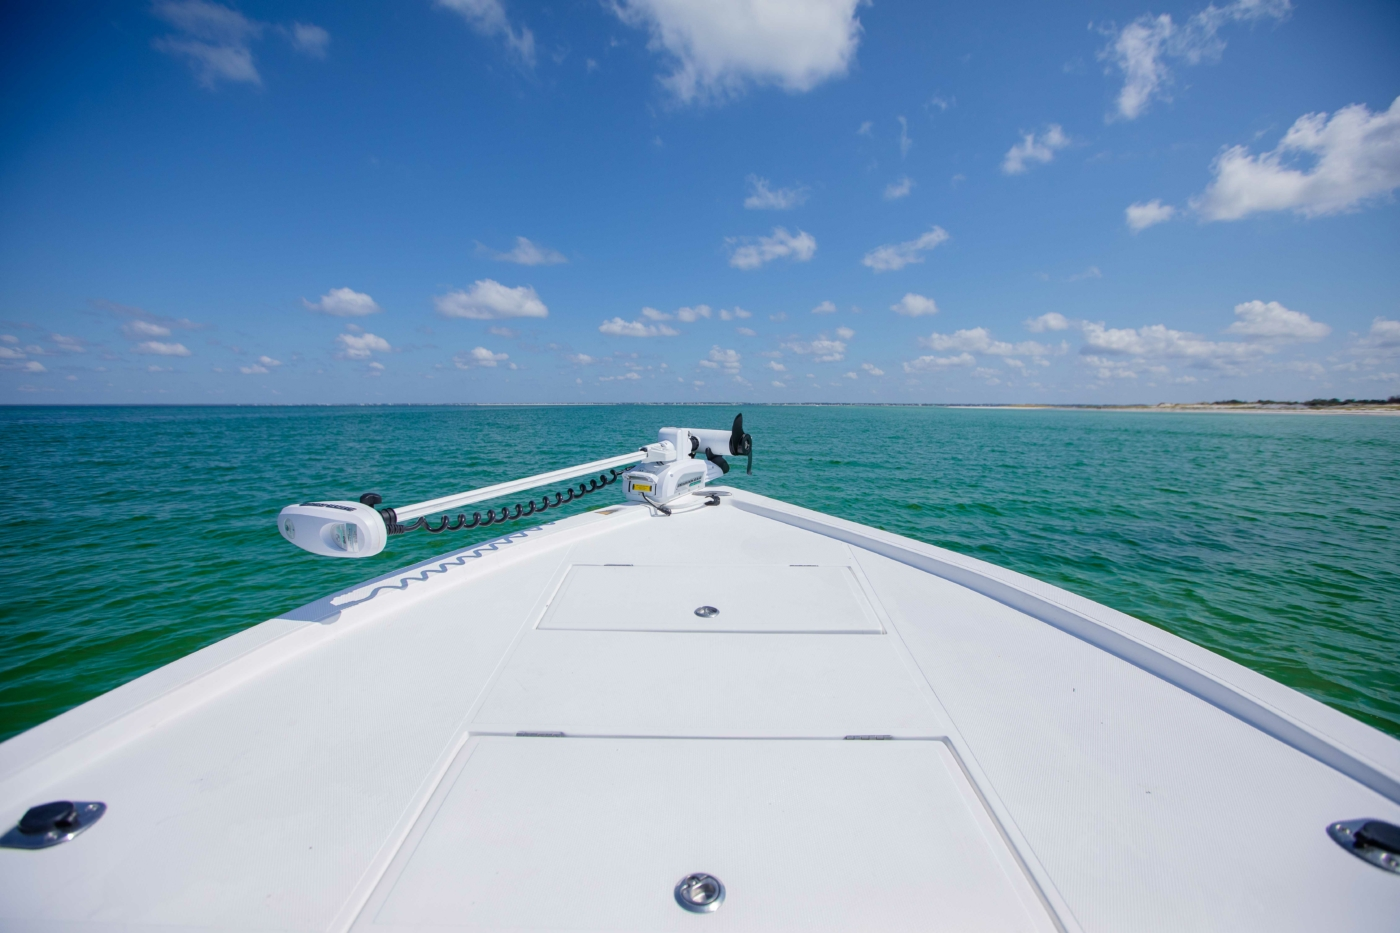 Image of bow of boat overlooking Cape San Blas.